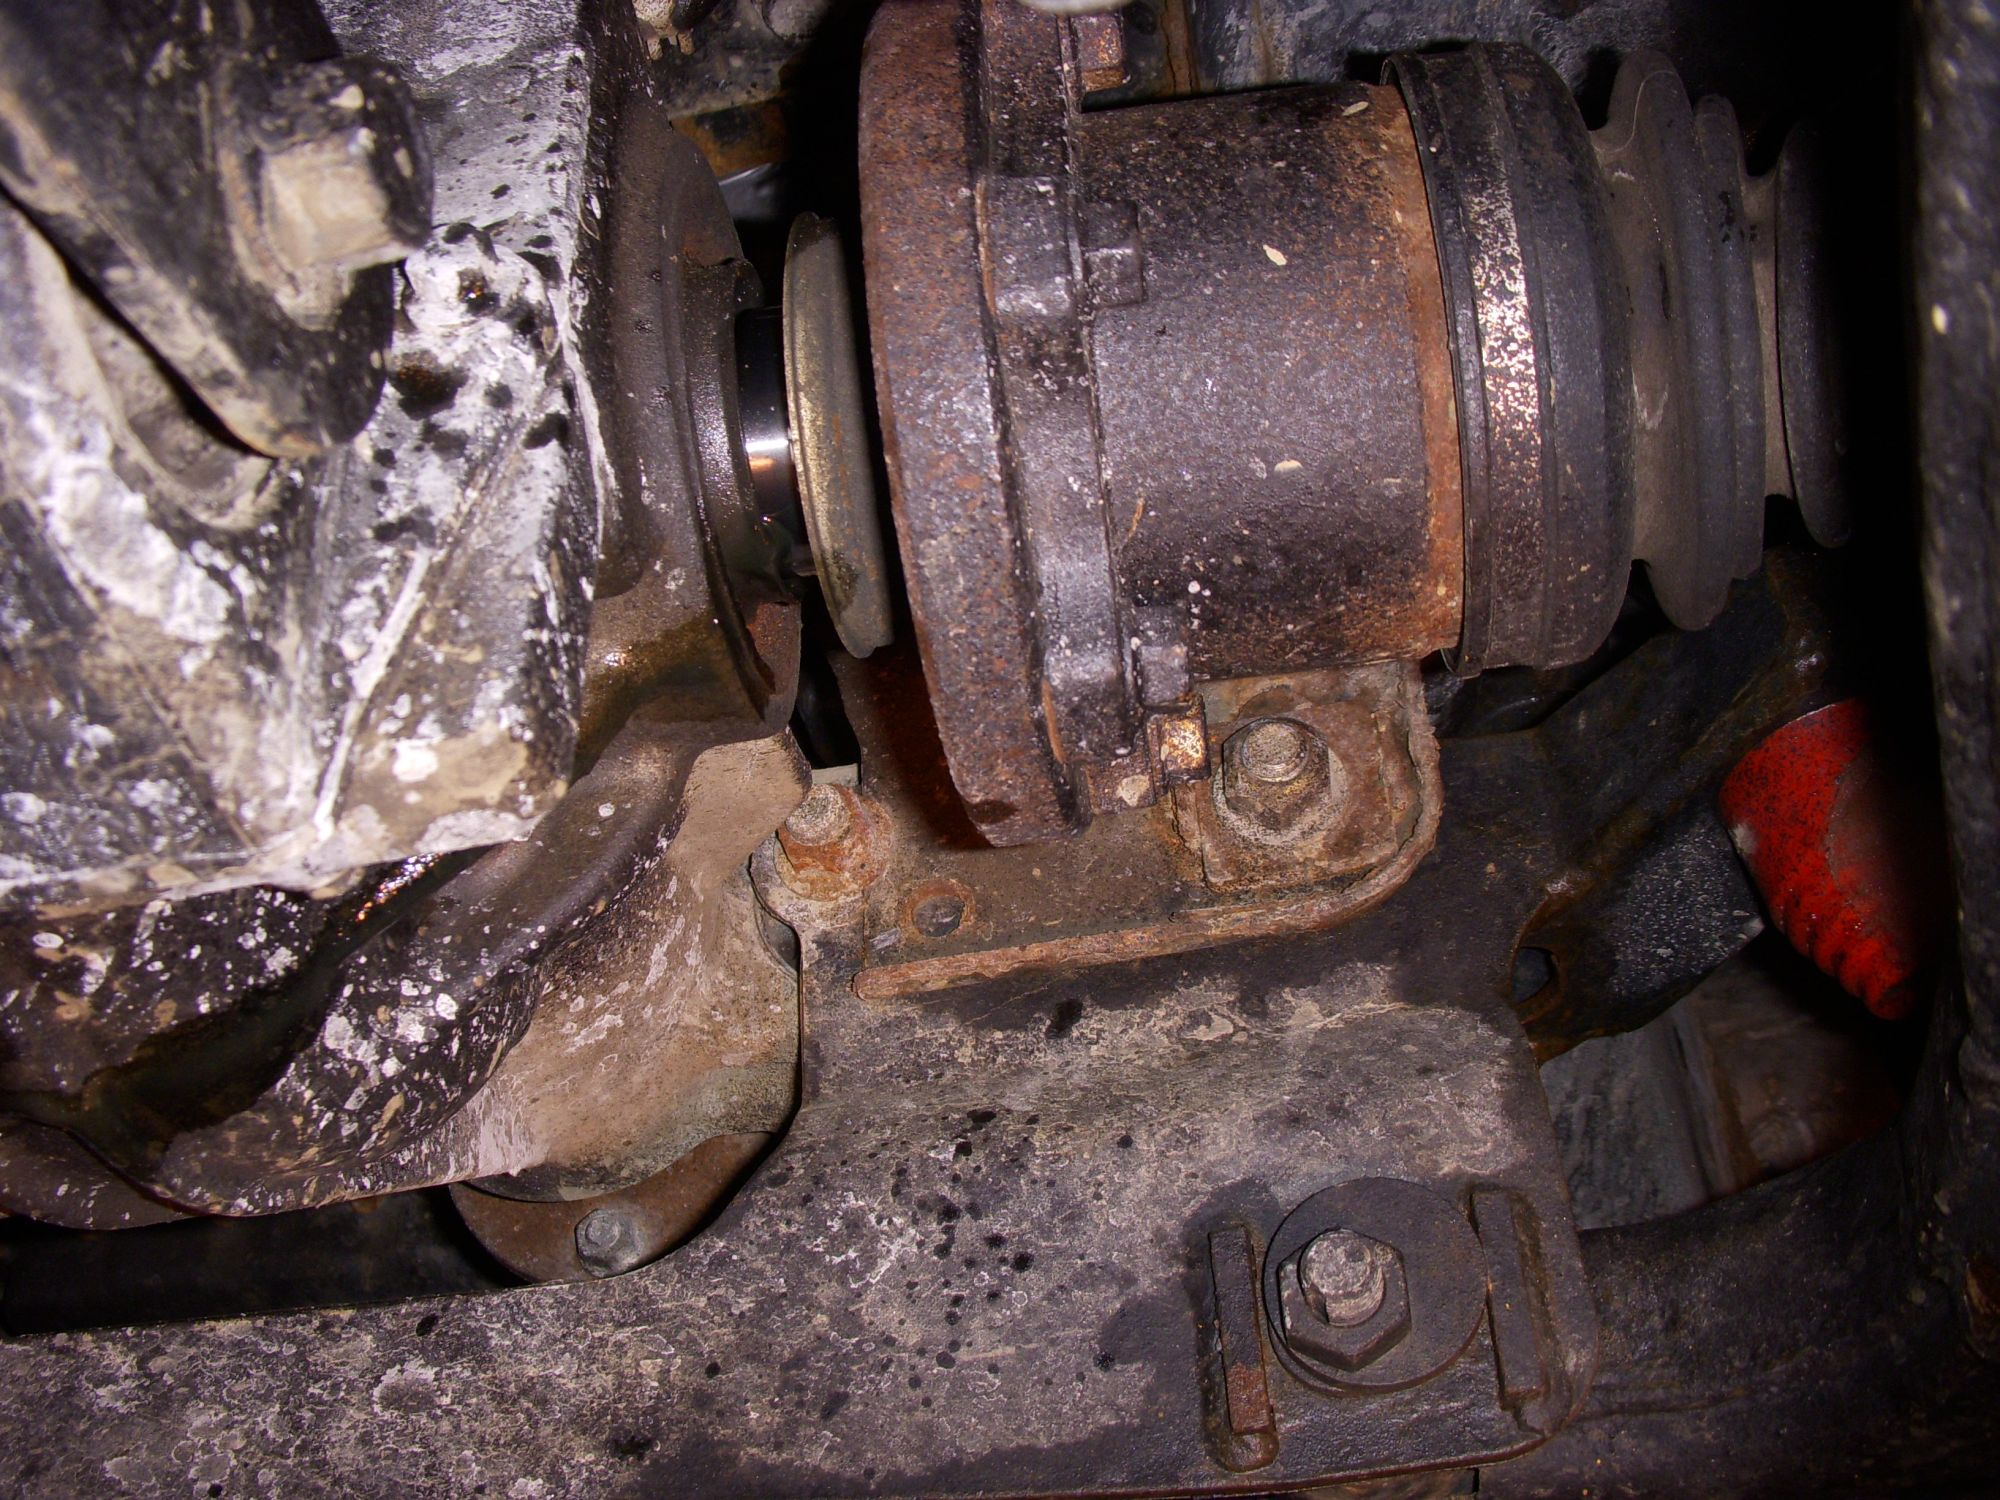 nissan titan front axle popped out